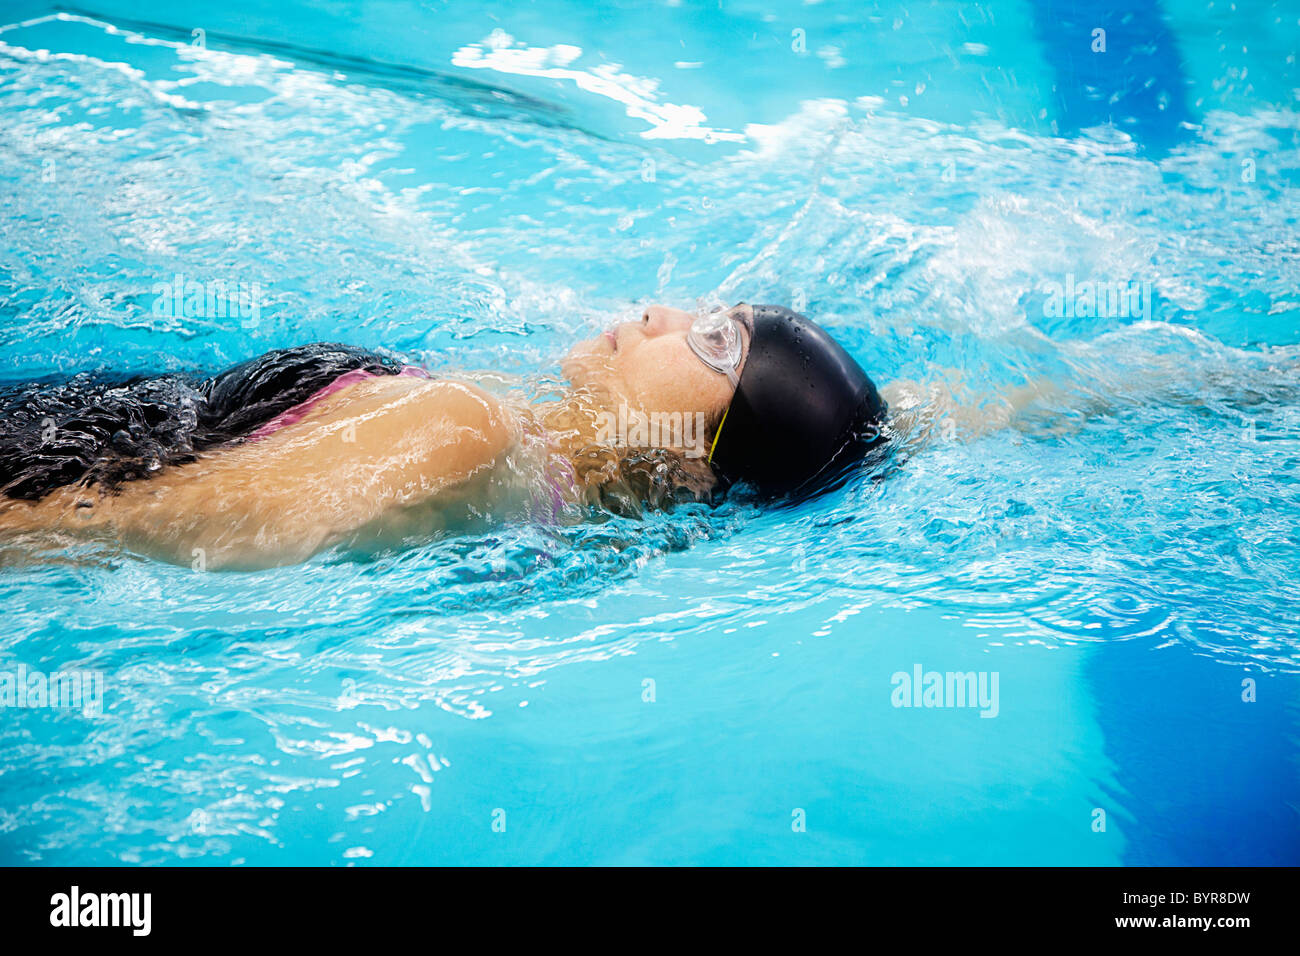 a woman wearing a cap and goggles swims the back stroke; edmonton, alberta, canada - Stock Image